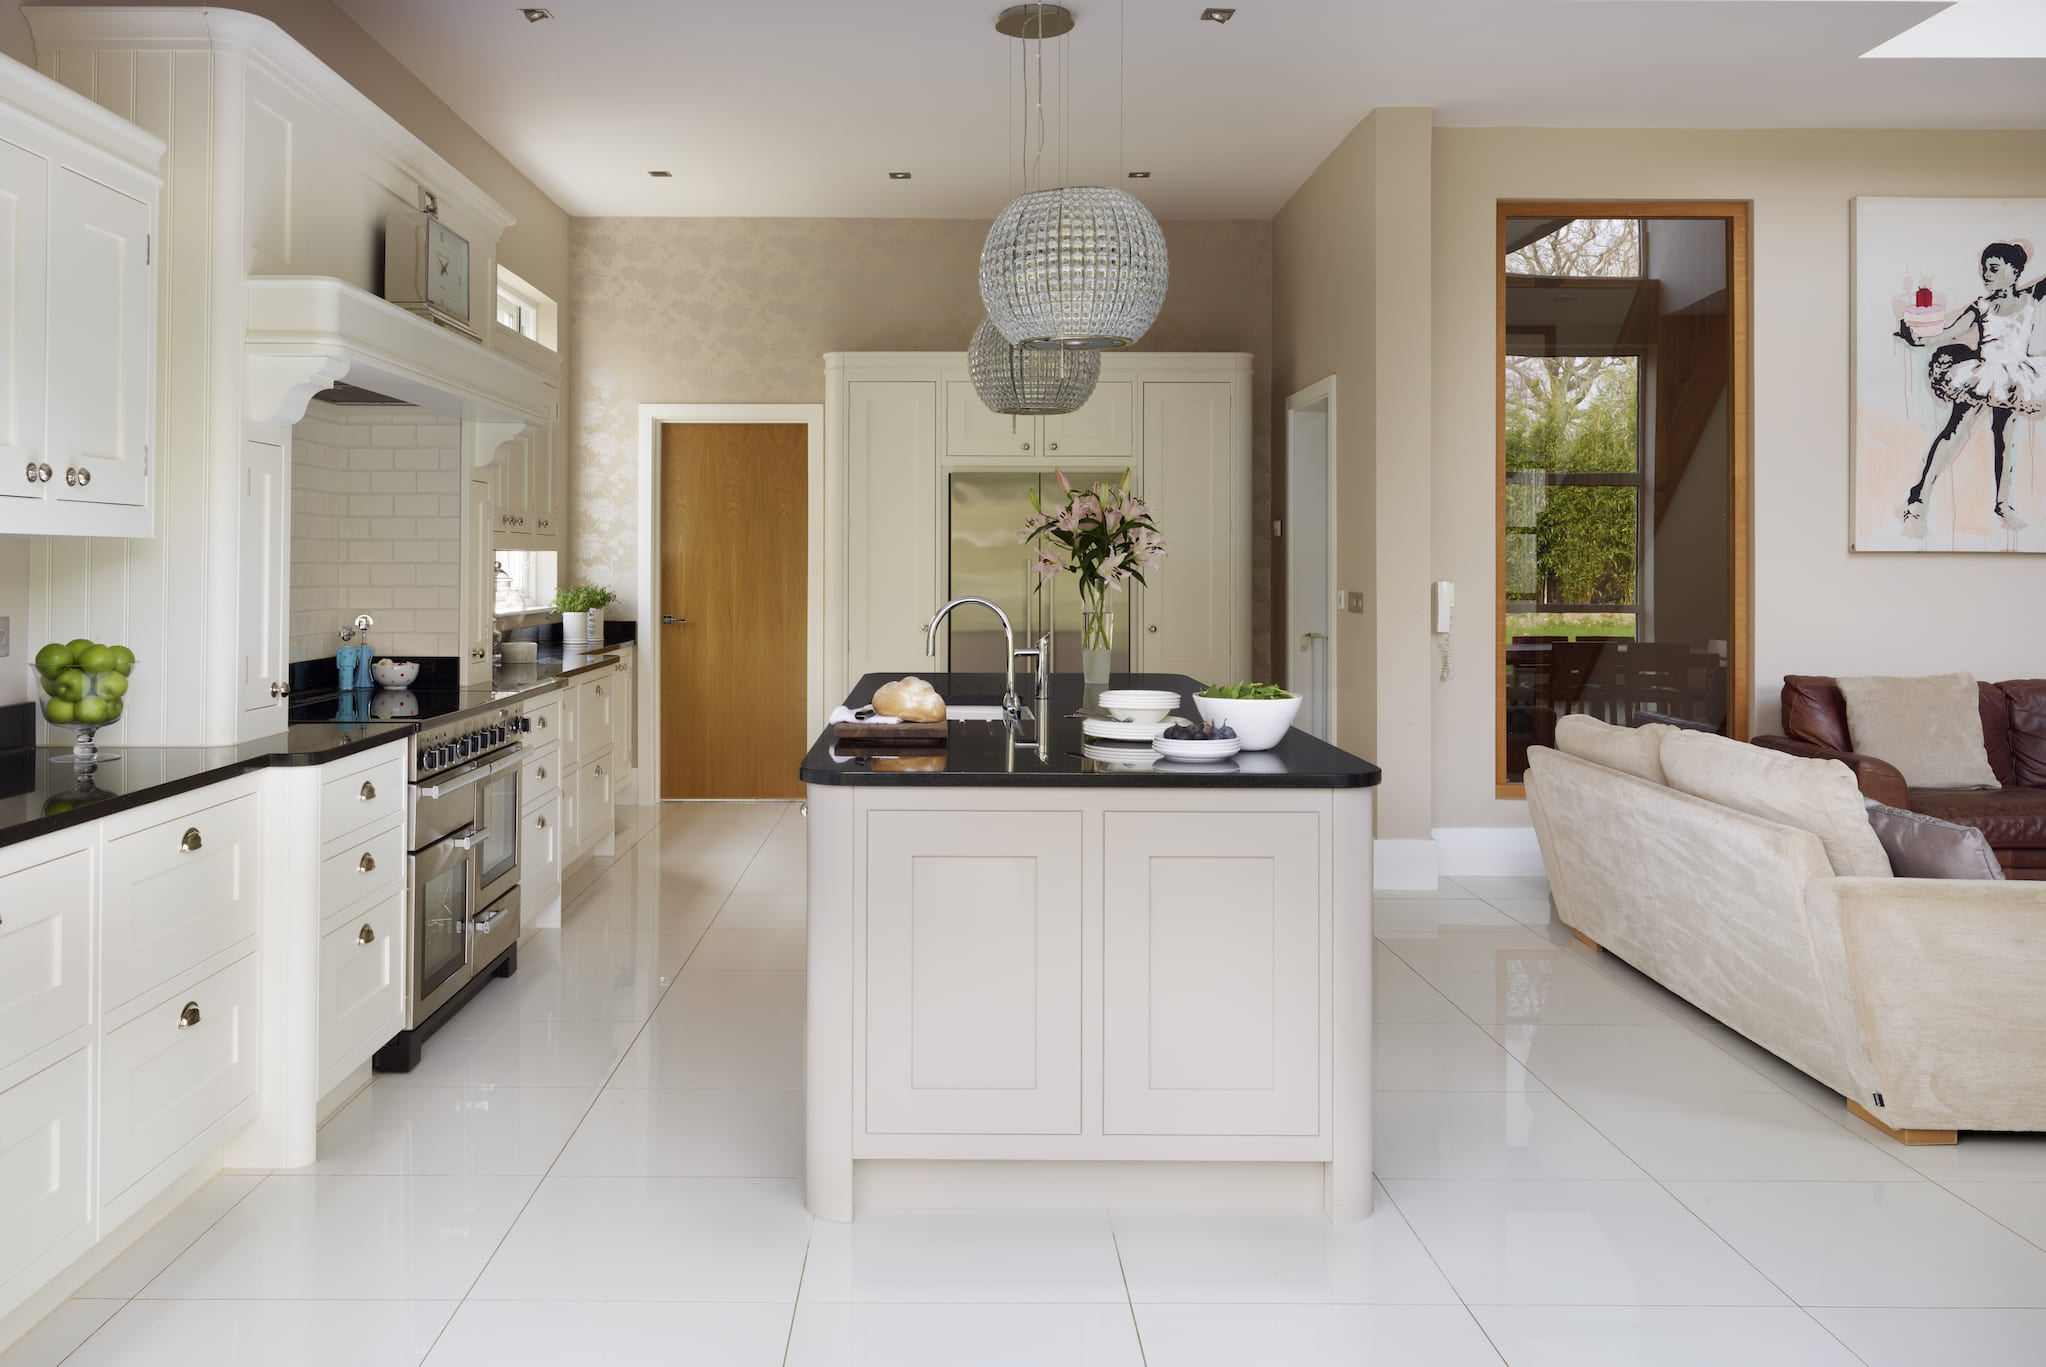 Open Plan Kitchen Design How To Plan Your Open Plan Room